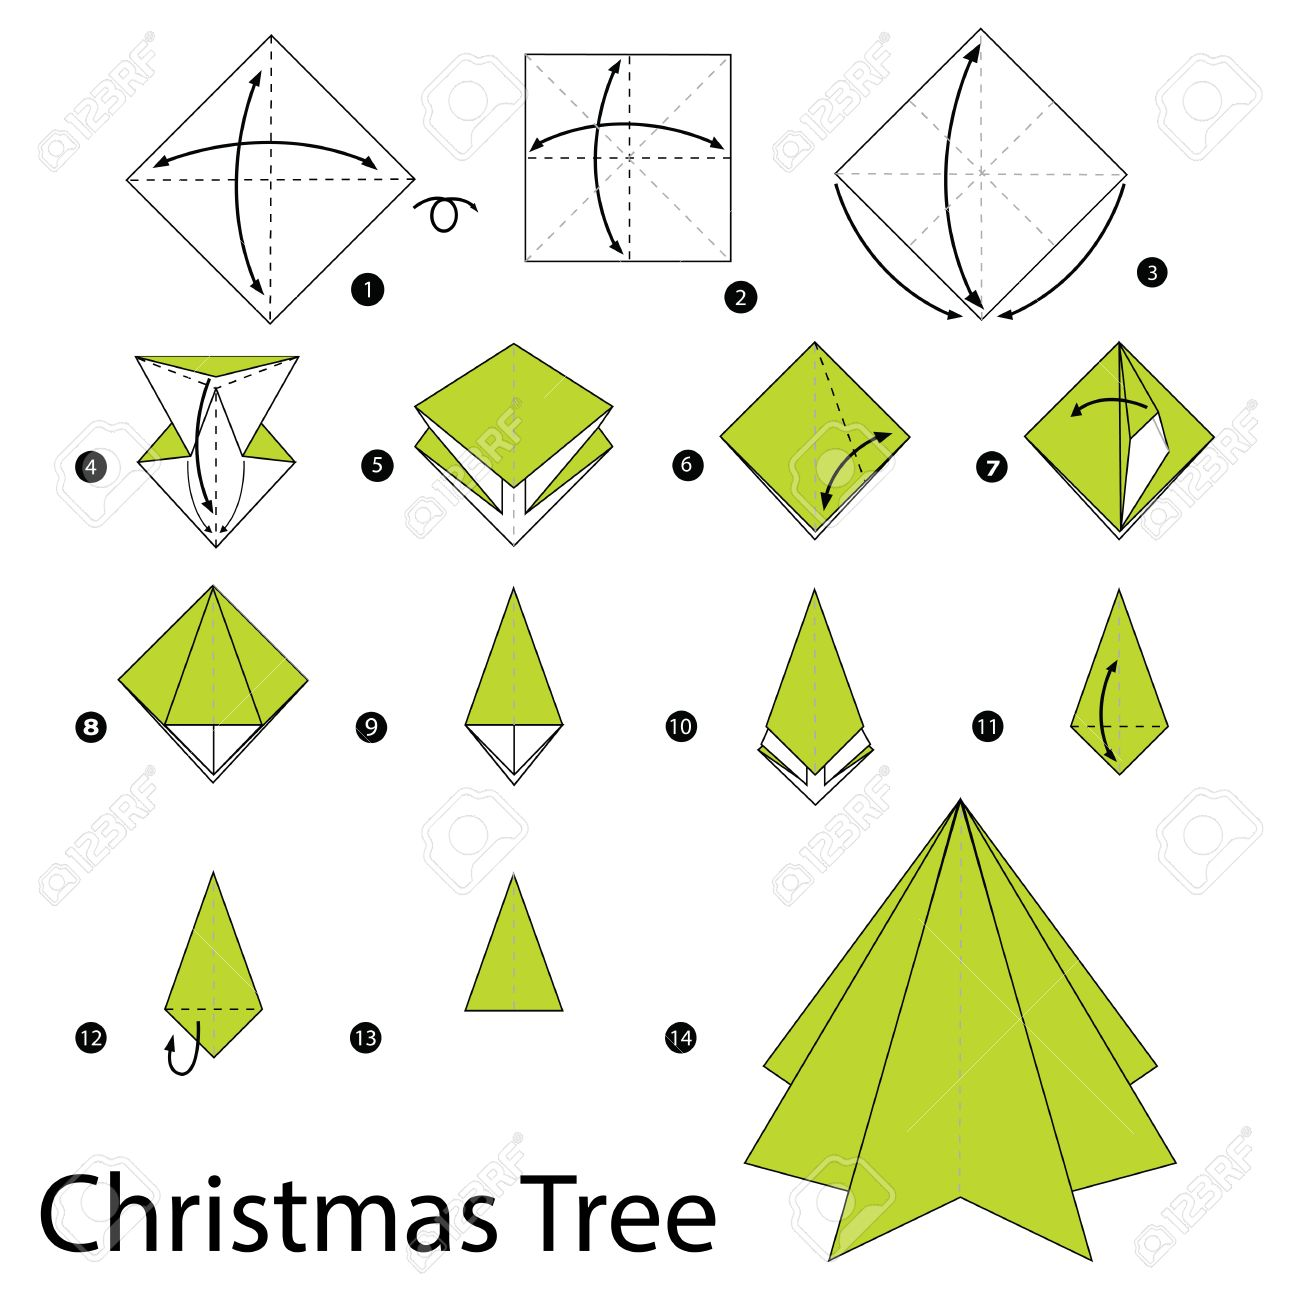 Craft ideas. Master class christmas tree in the origami.